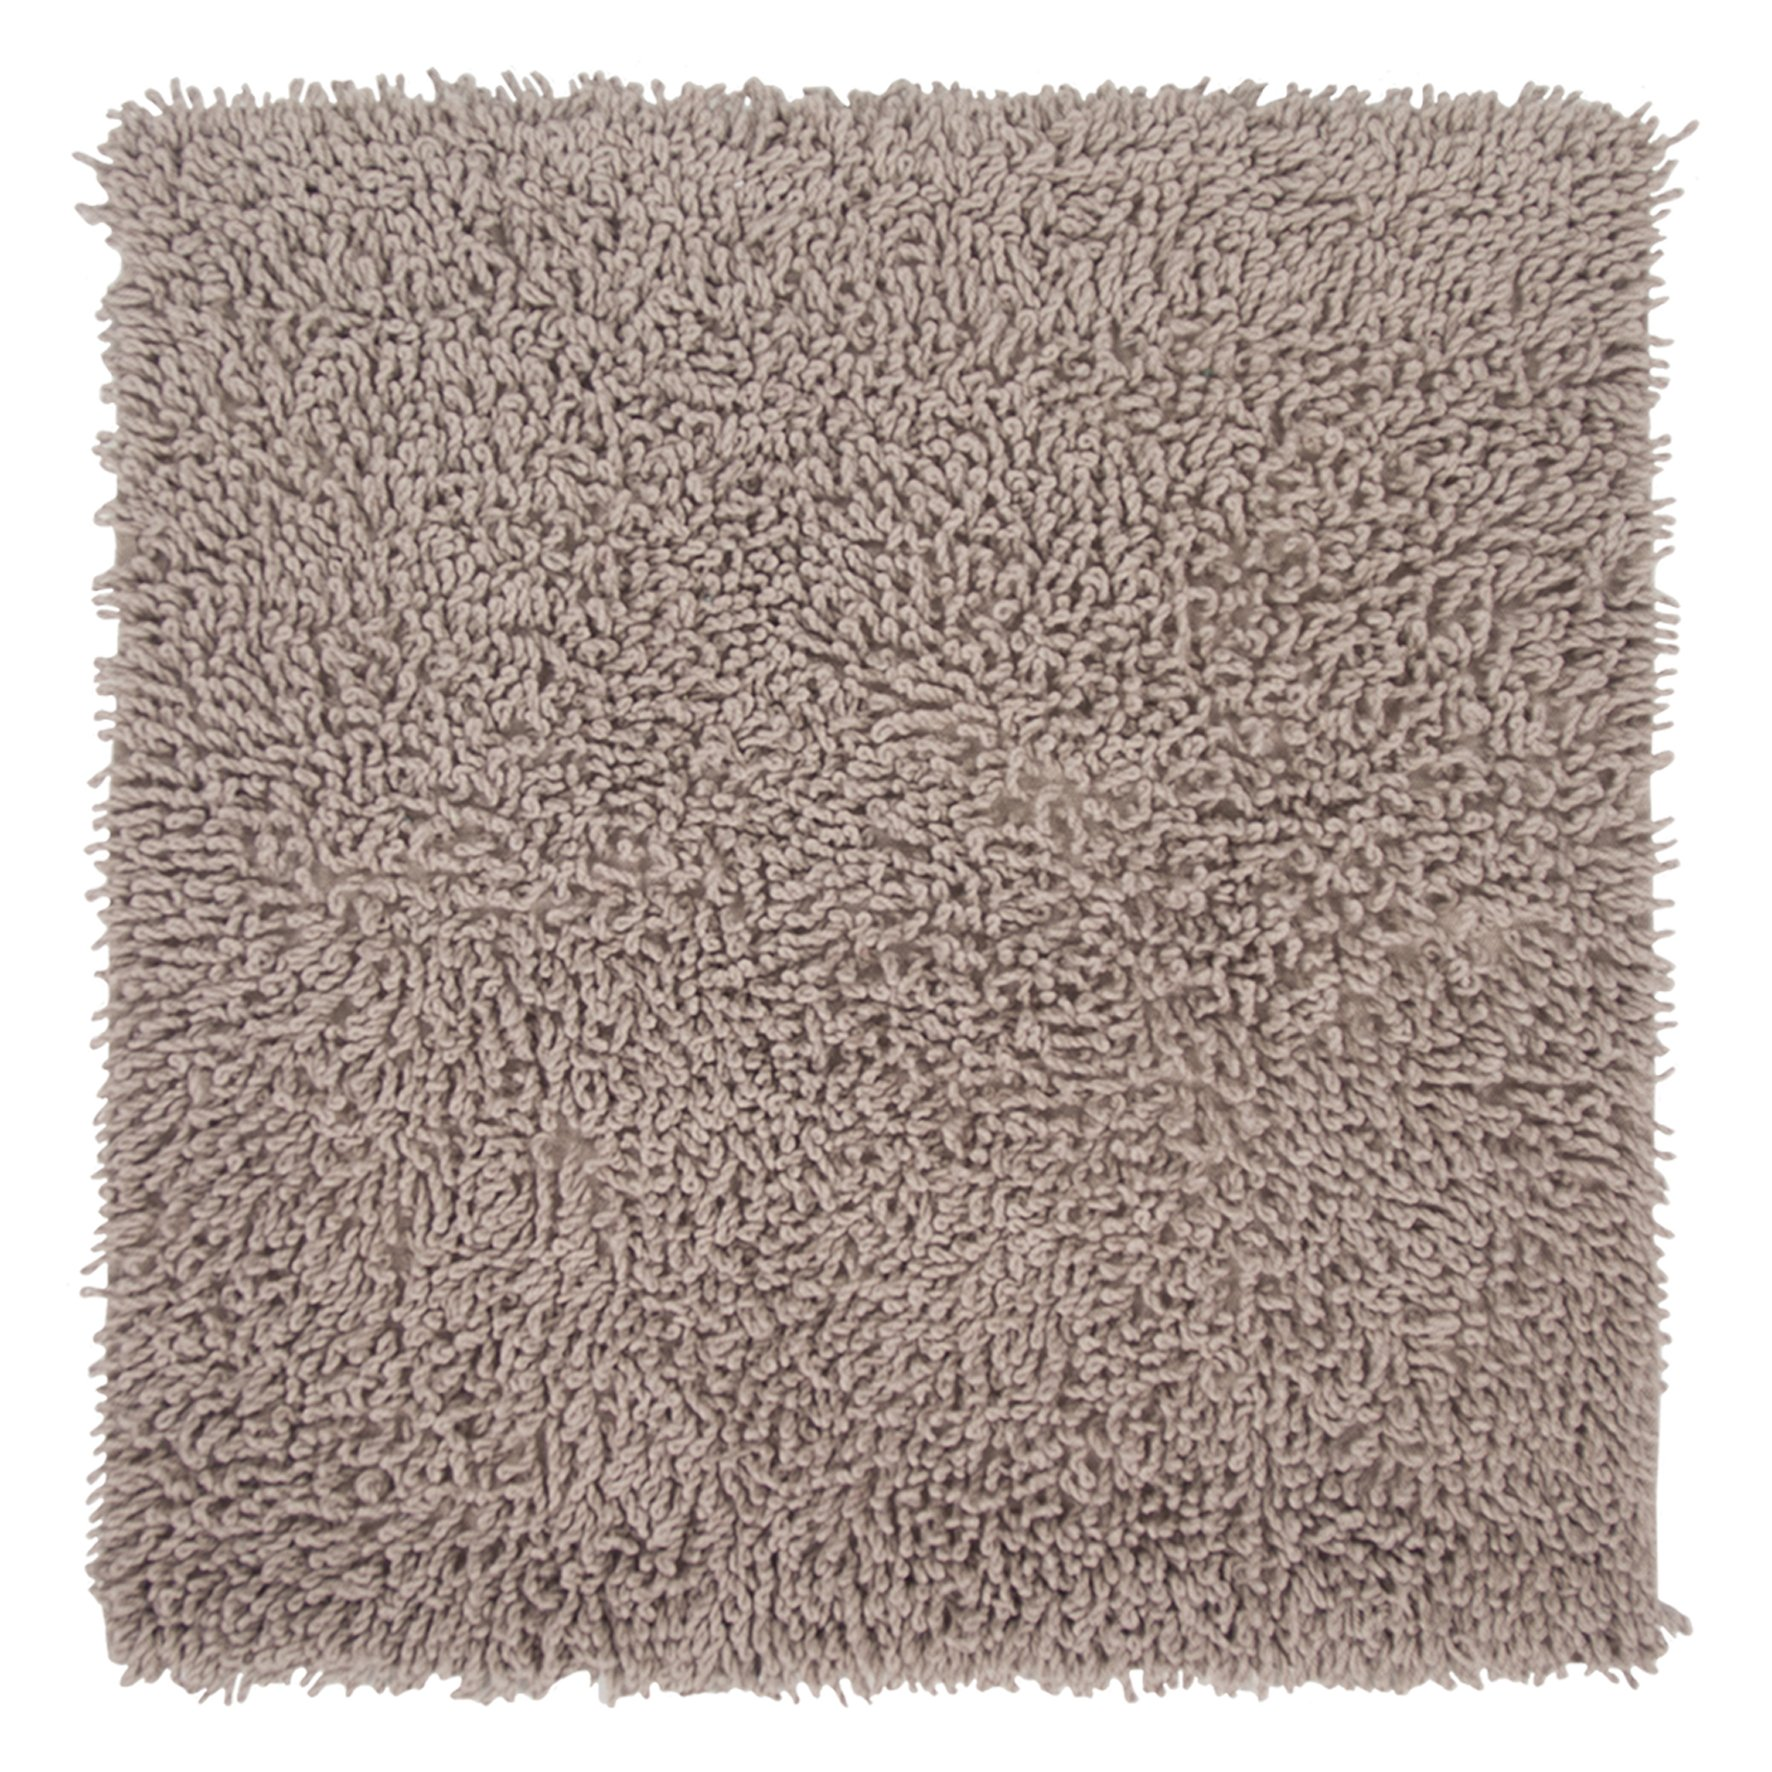 DIFFERNZ 31.102.28 Essence Bath Mat, Taupe by Differnz